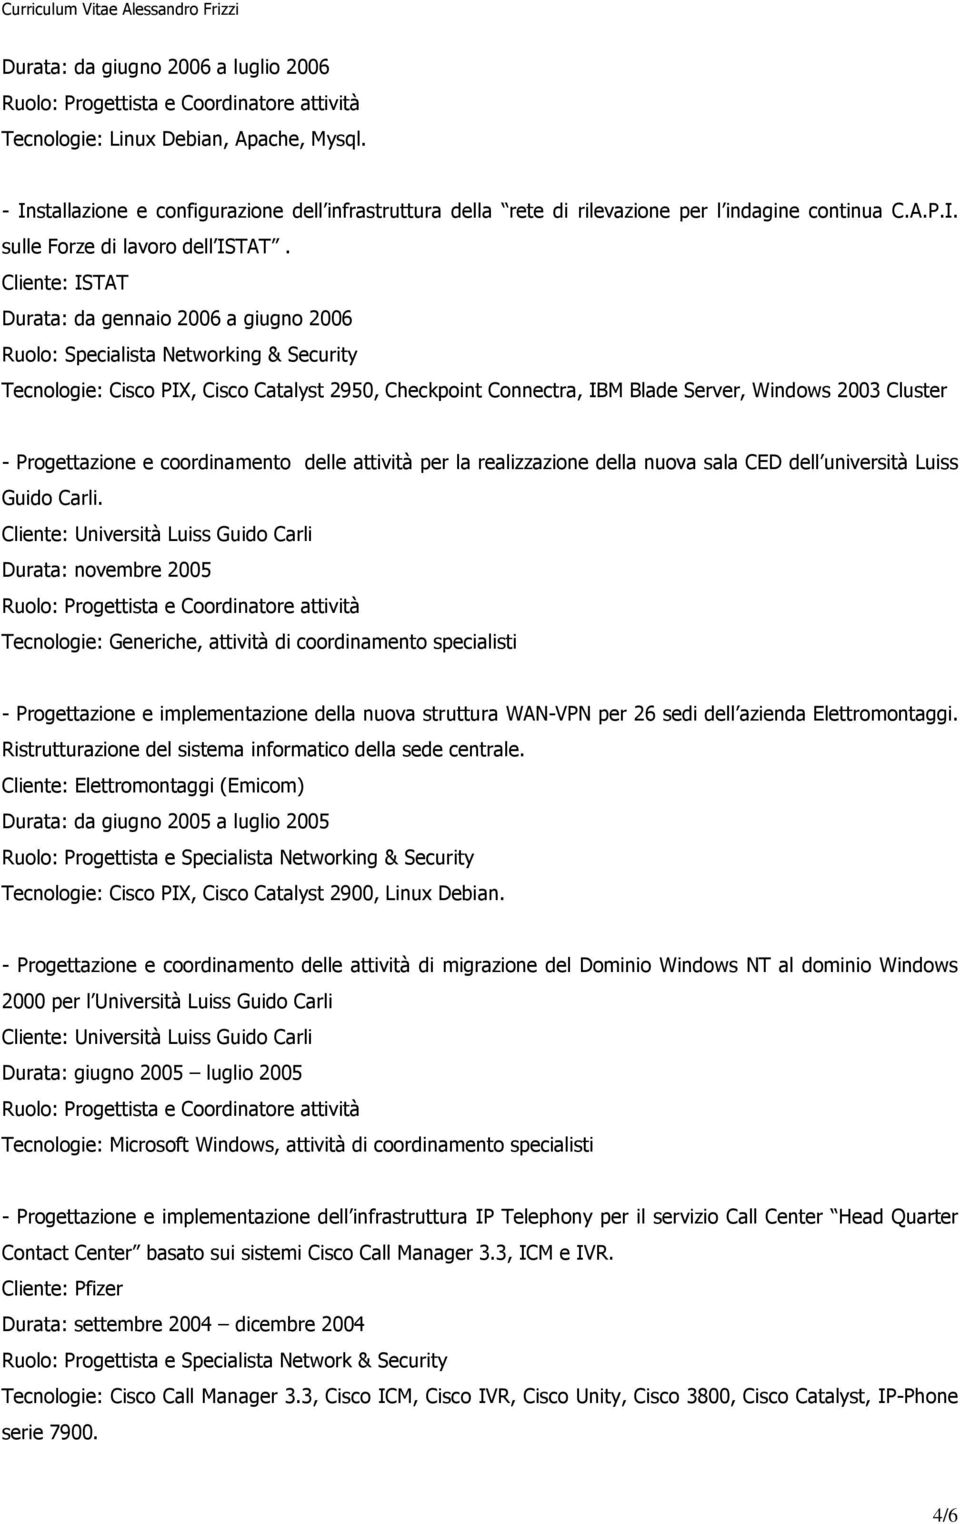 Cliente: ISTAT Durata: da gennaio 2006 a giugno 2006 Ruolo: Specialista Networking & Security Tecnologie: Cisco PIX, Cisco Catalyst 2950, Checkpoint Connectra, IBM Blade Server, Windows 2003 Cluster